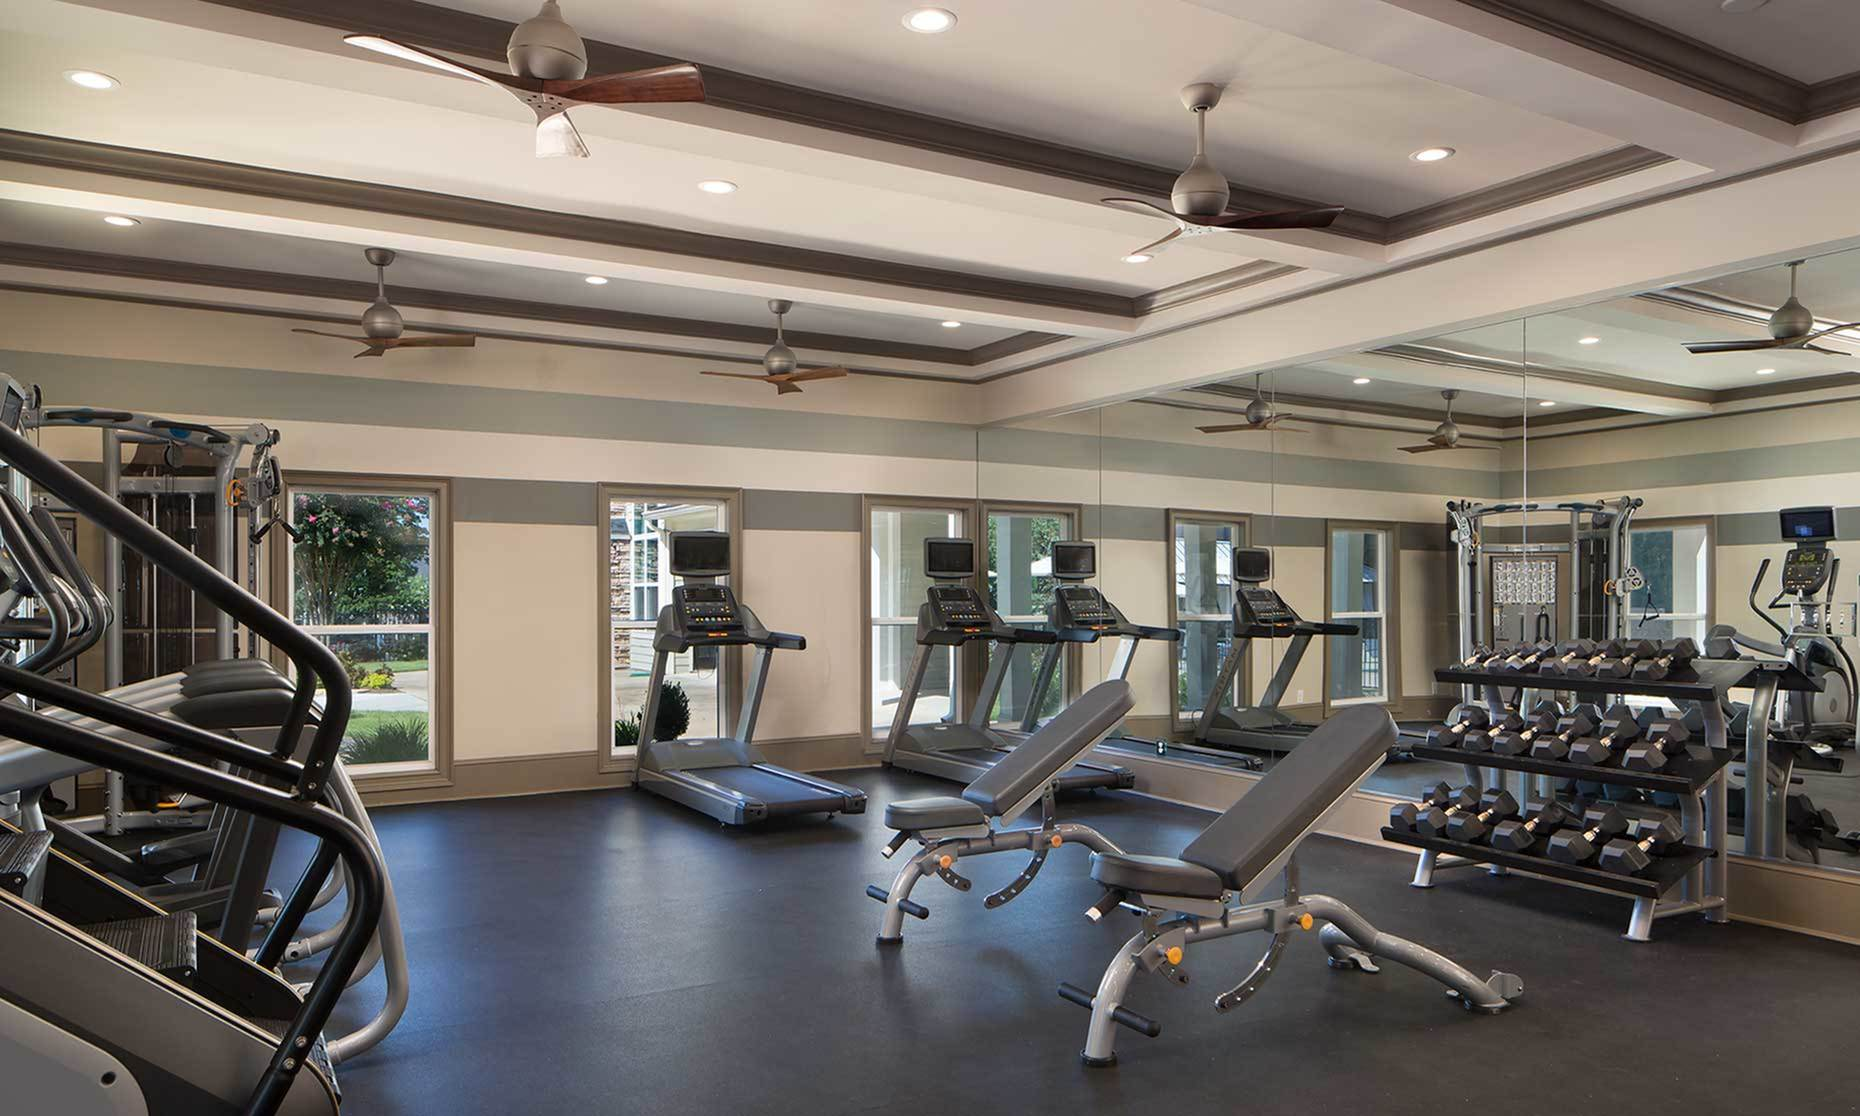 Image of 24 hour state of the art fitness center for Westpark Club